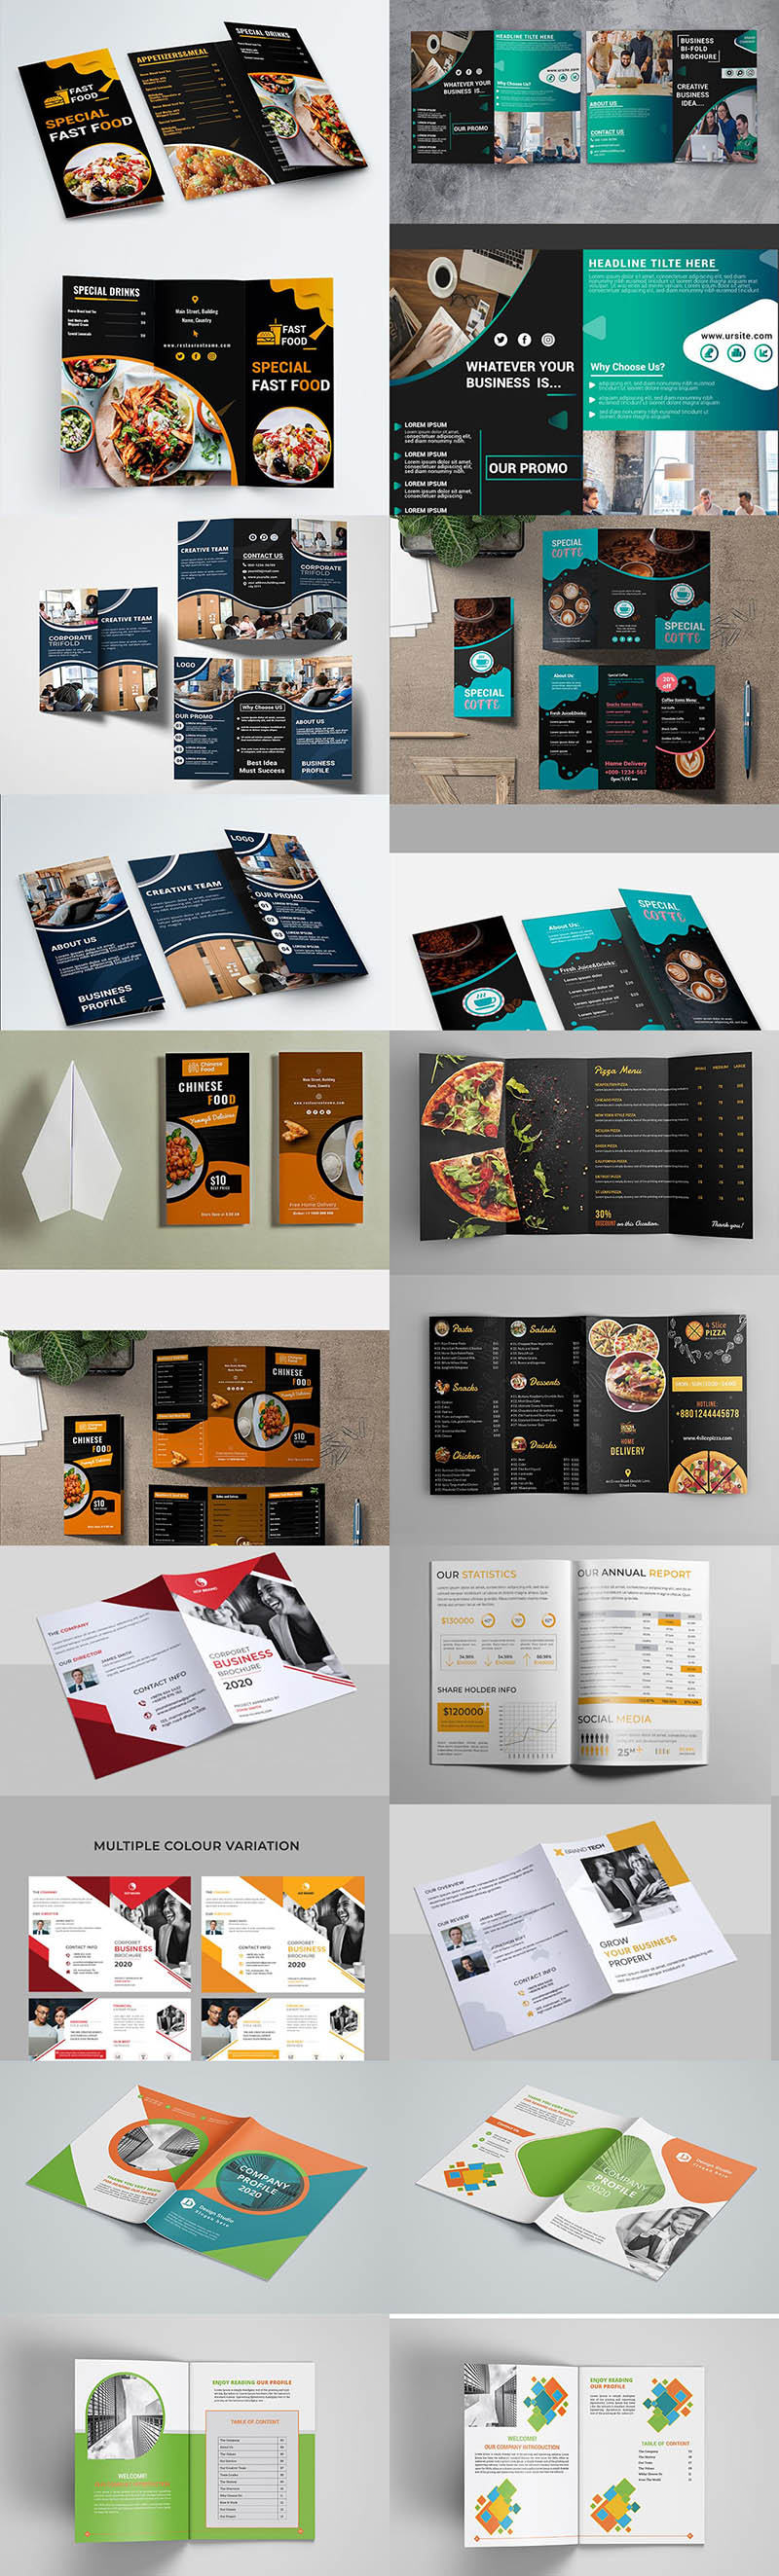 50 Brochures with Extended License - Only $19